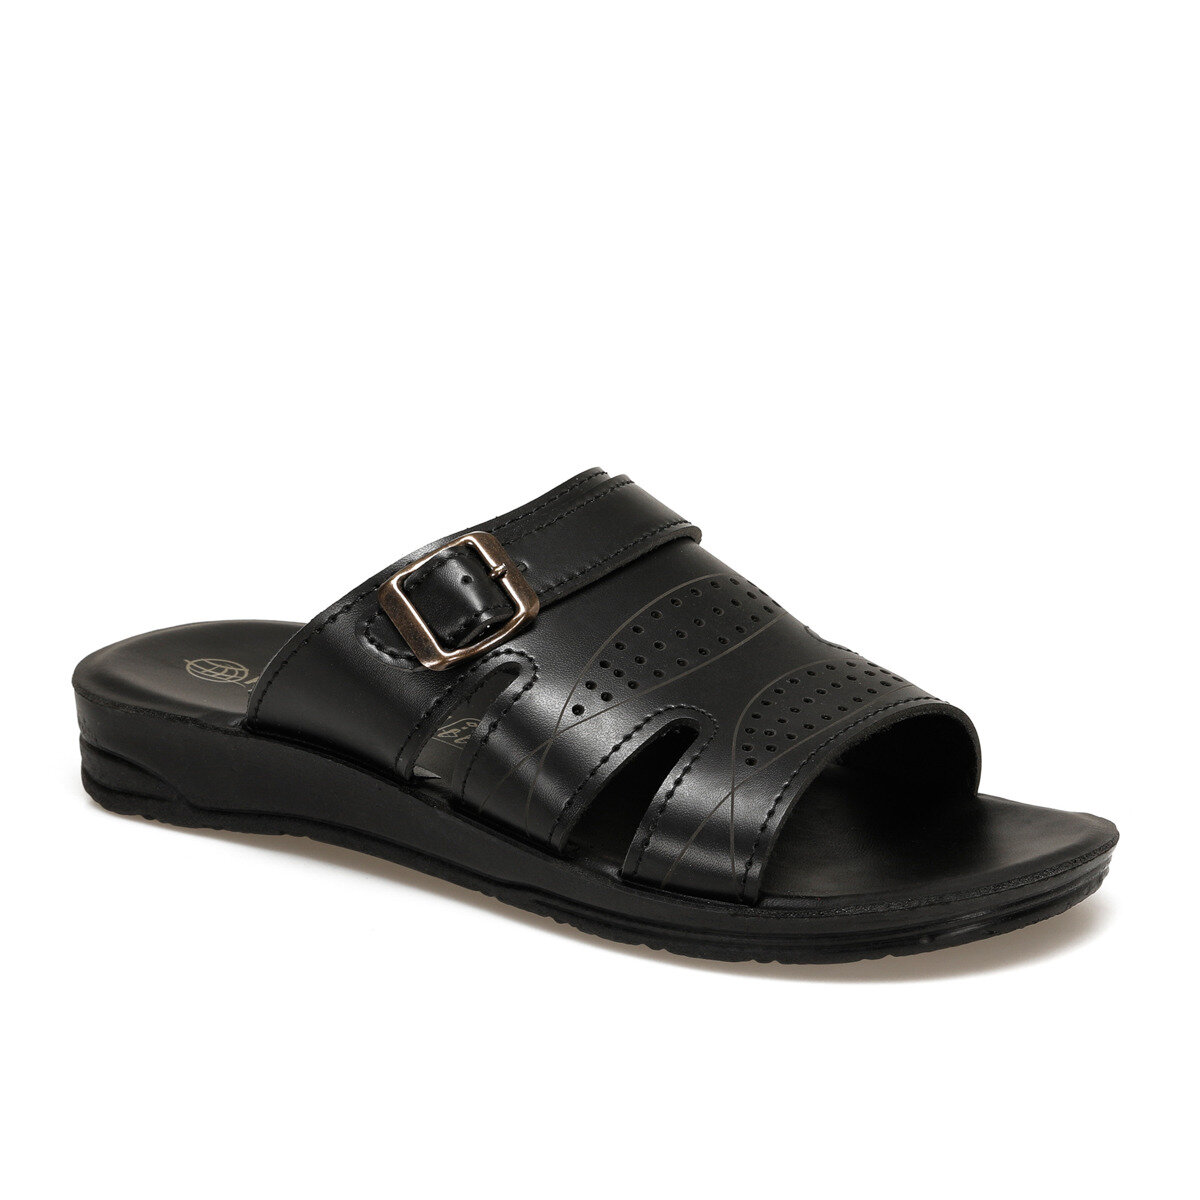 FLO ECM Black Male Slippers Panama Club